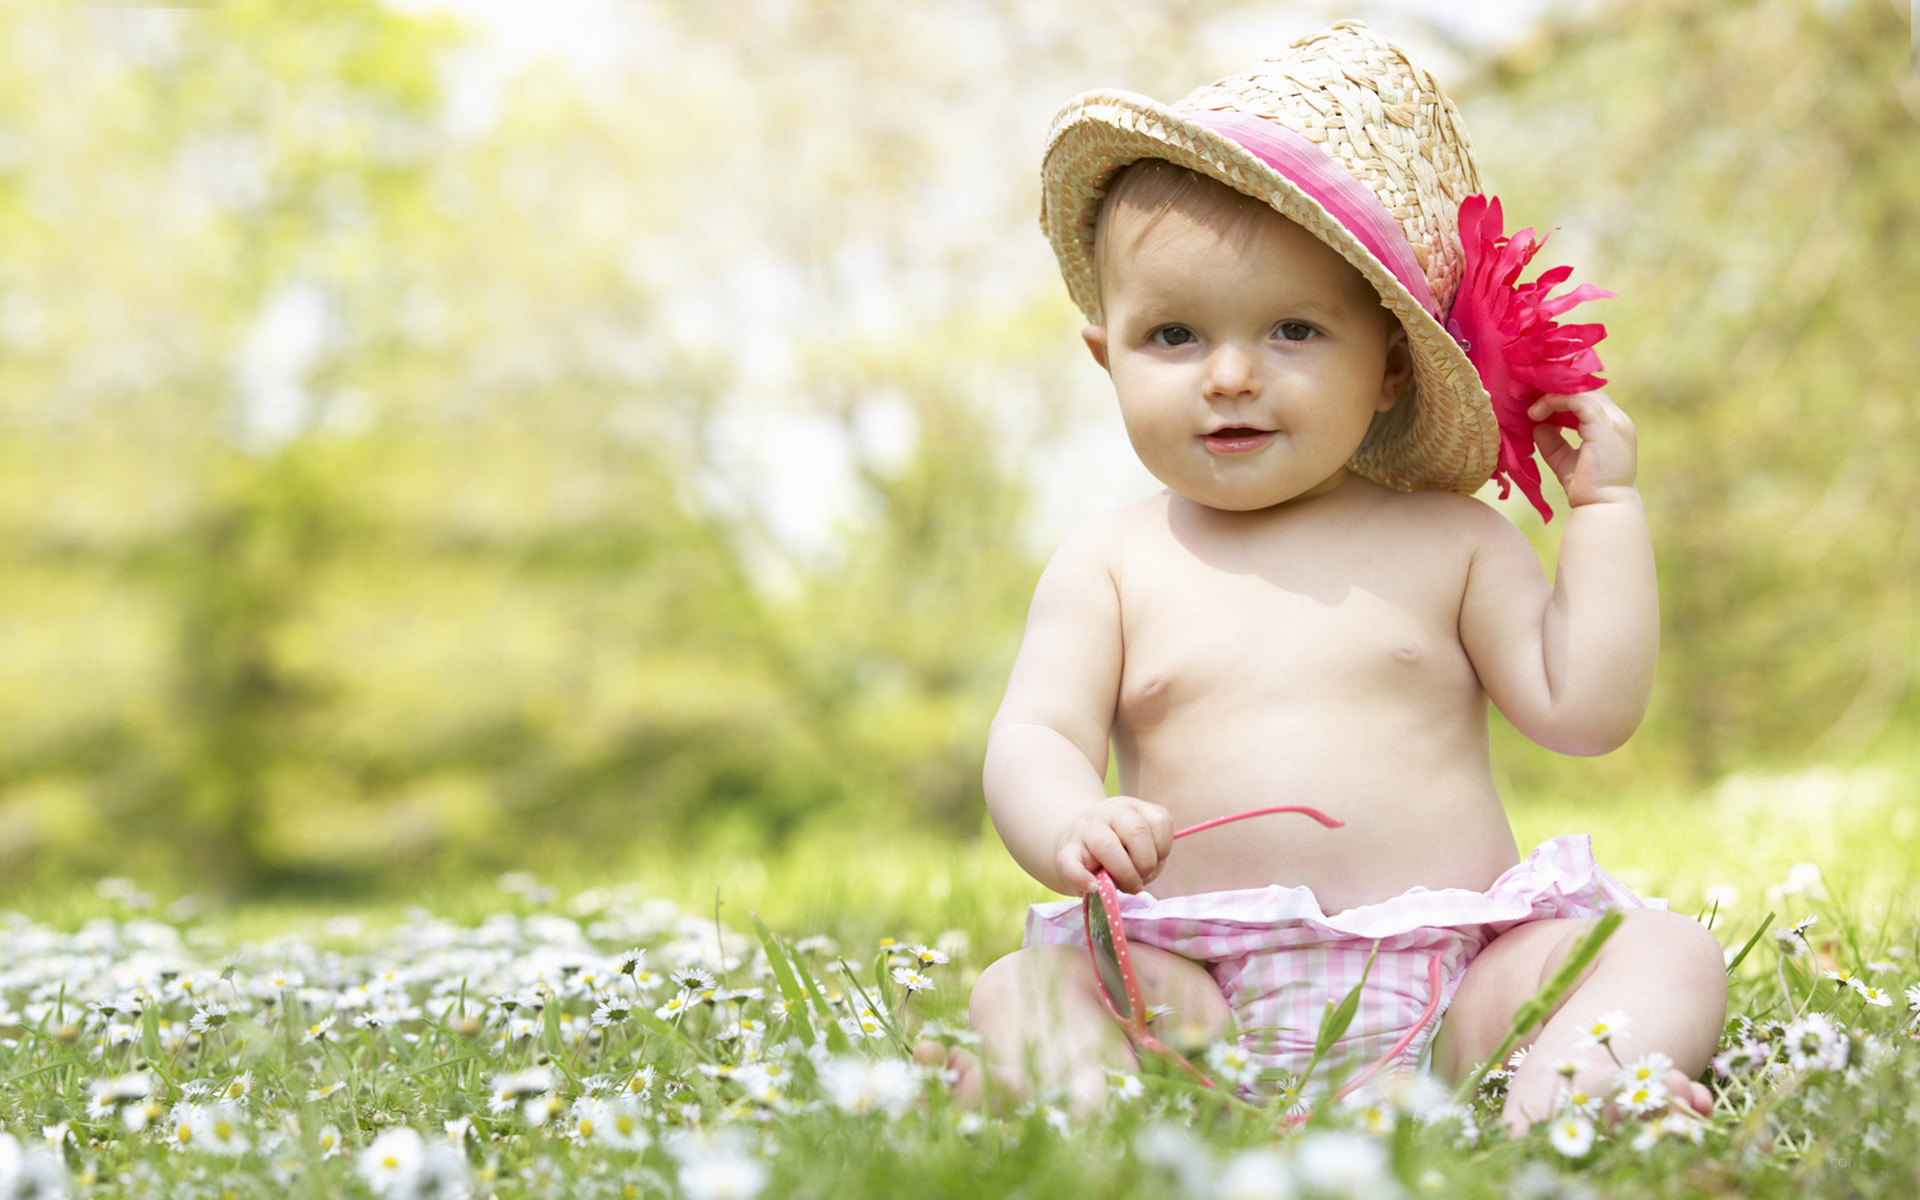 Biggest Collection Of HD Baby Wallpaper For Desktop And Mobile